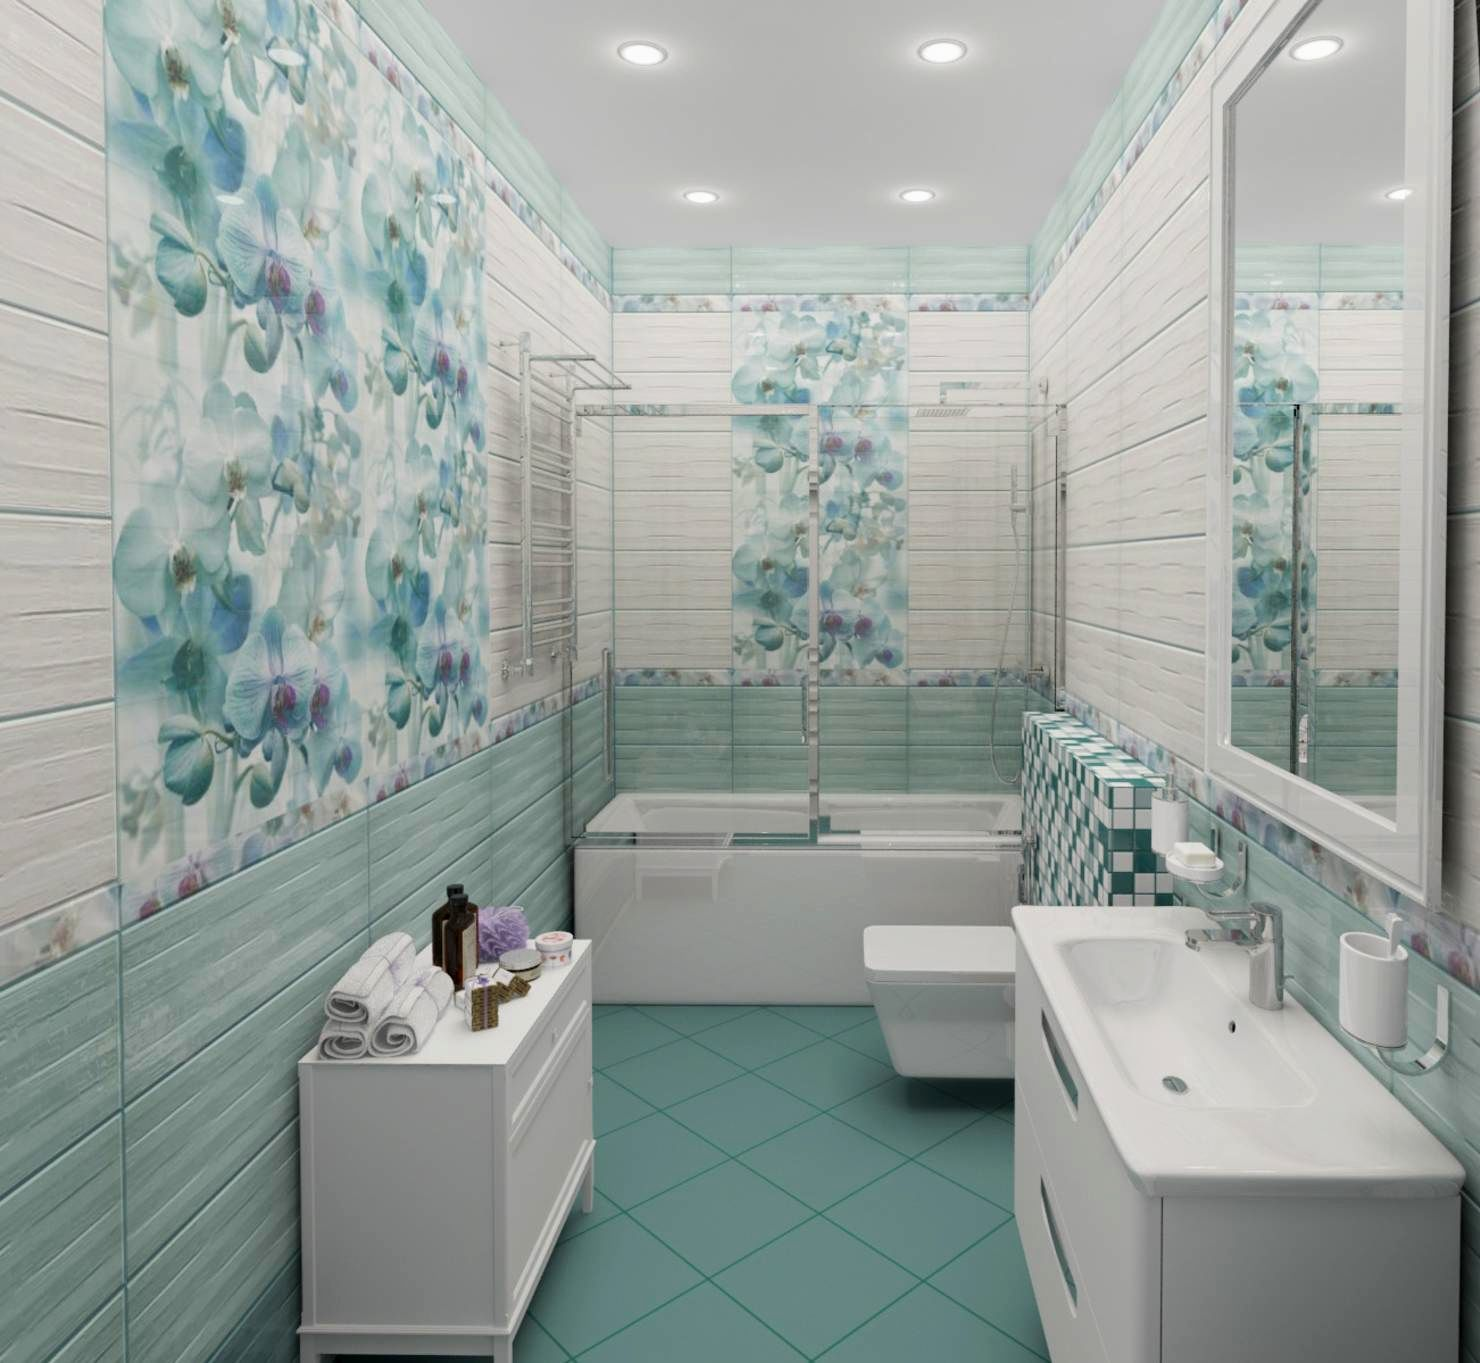 best in the bathroom ideas-Amazing In the Bathroom Photograph